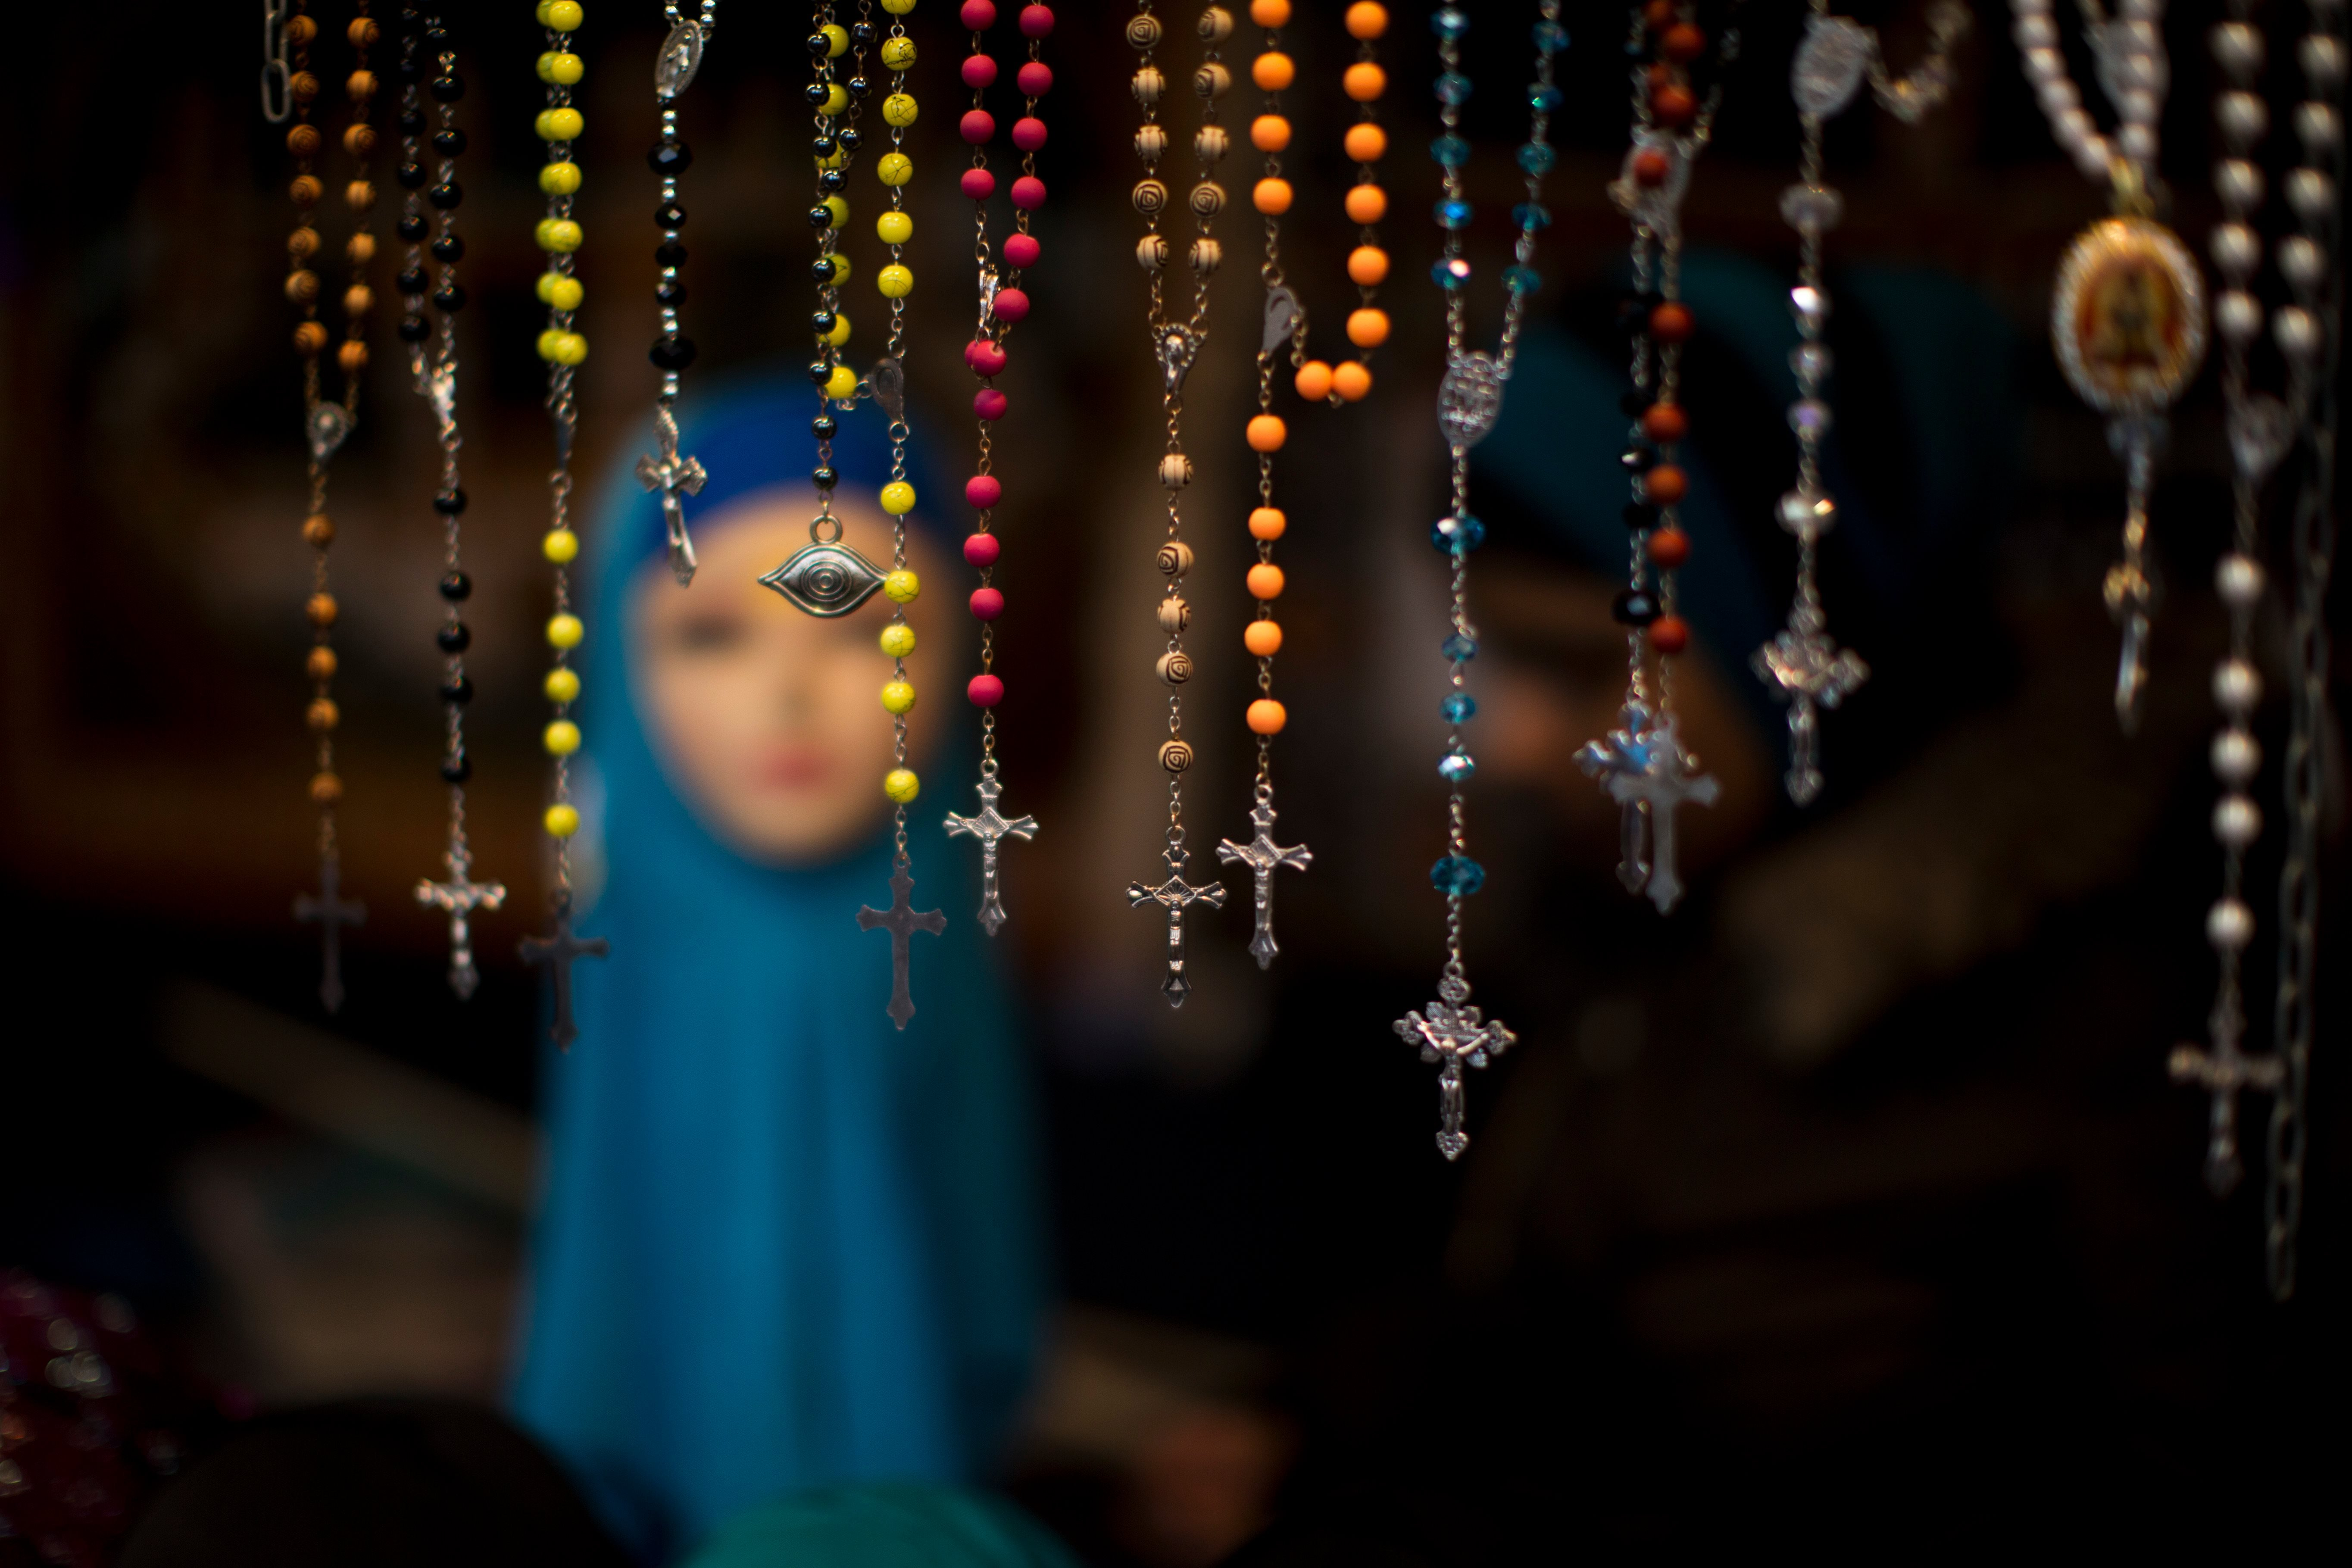 Rosary beads are displayed for selling next to a mannequin wearing a headscarf in a market stall at The Hague, The Netherlands.